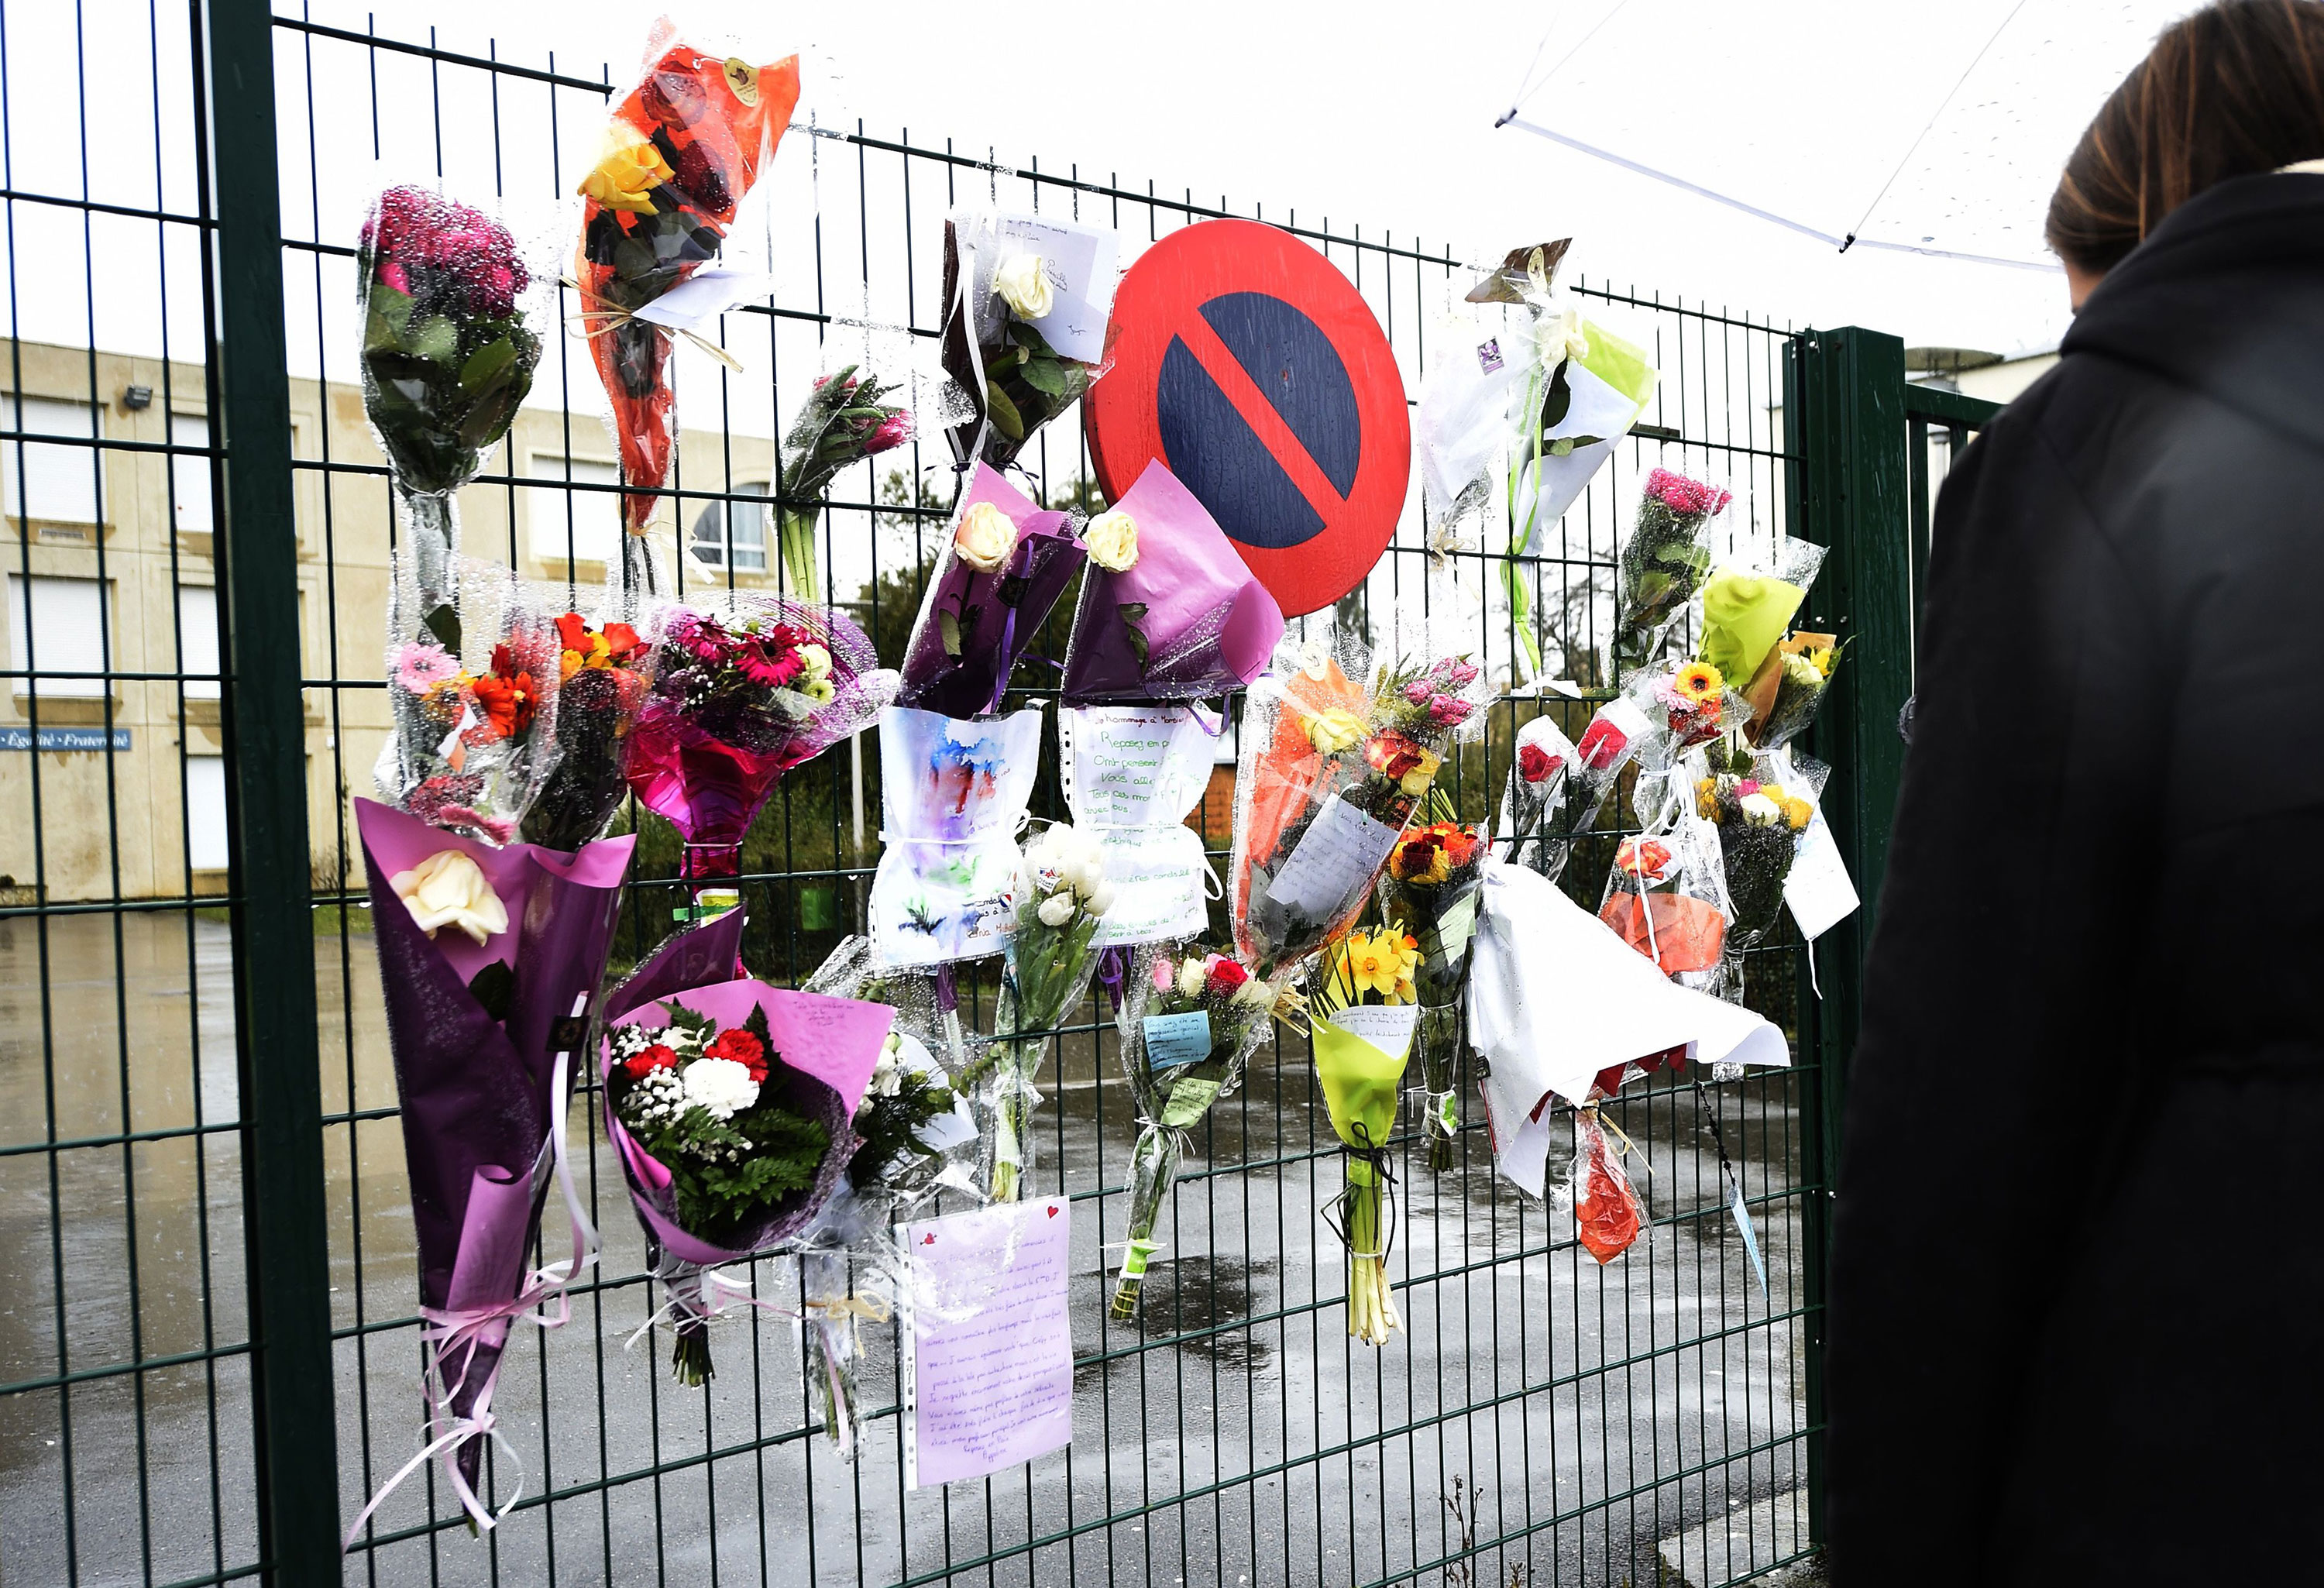 Flowers and letters are placed at the entrance of La Fontaine College in Crepy-en-Valois, France, on Sunday to honor a teacher who died as a result of coronavirus.